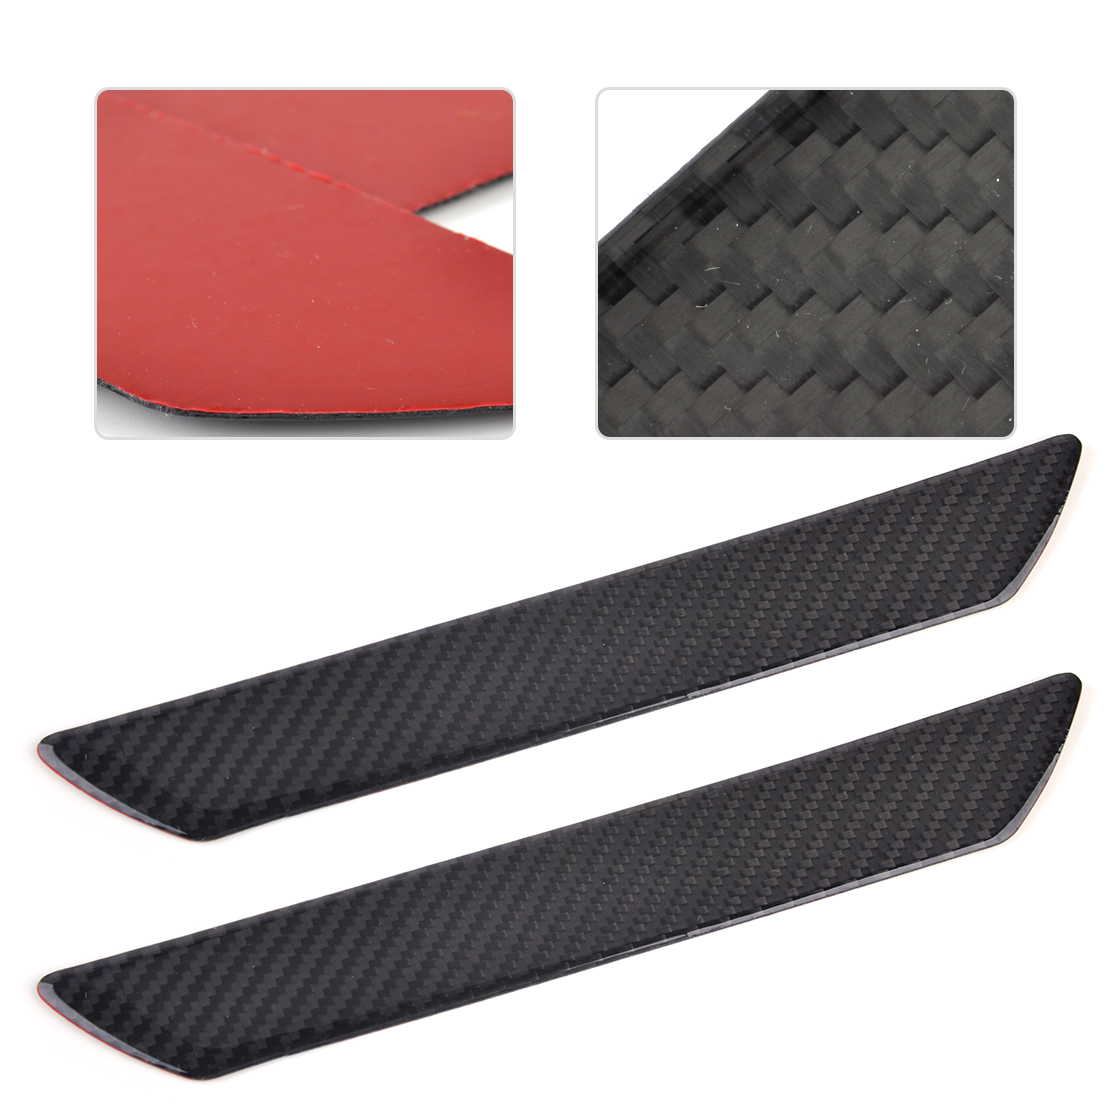 beler 2Pcs Real Carbon Fiber Car Door Step Scuff Plate Sill Cover Panel Protect Trim Guard for VW Audi Ford Honda BMW Chevrolet 100mmx250mmx0 3mm 100% rc carbon fiber plate panel sheet 3k plain weave glossy hot